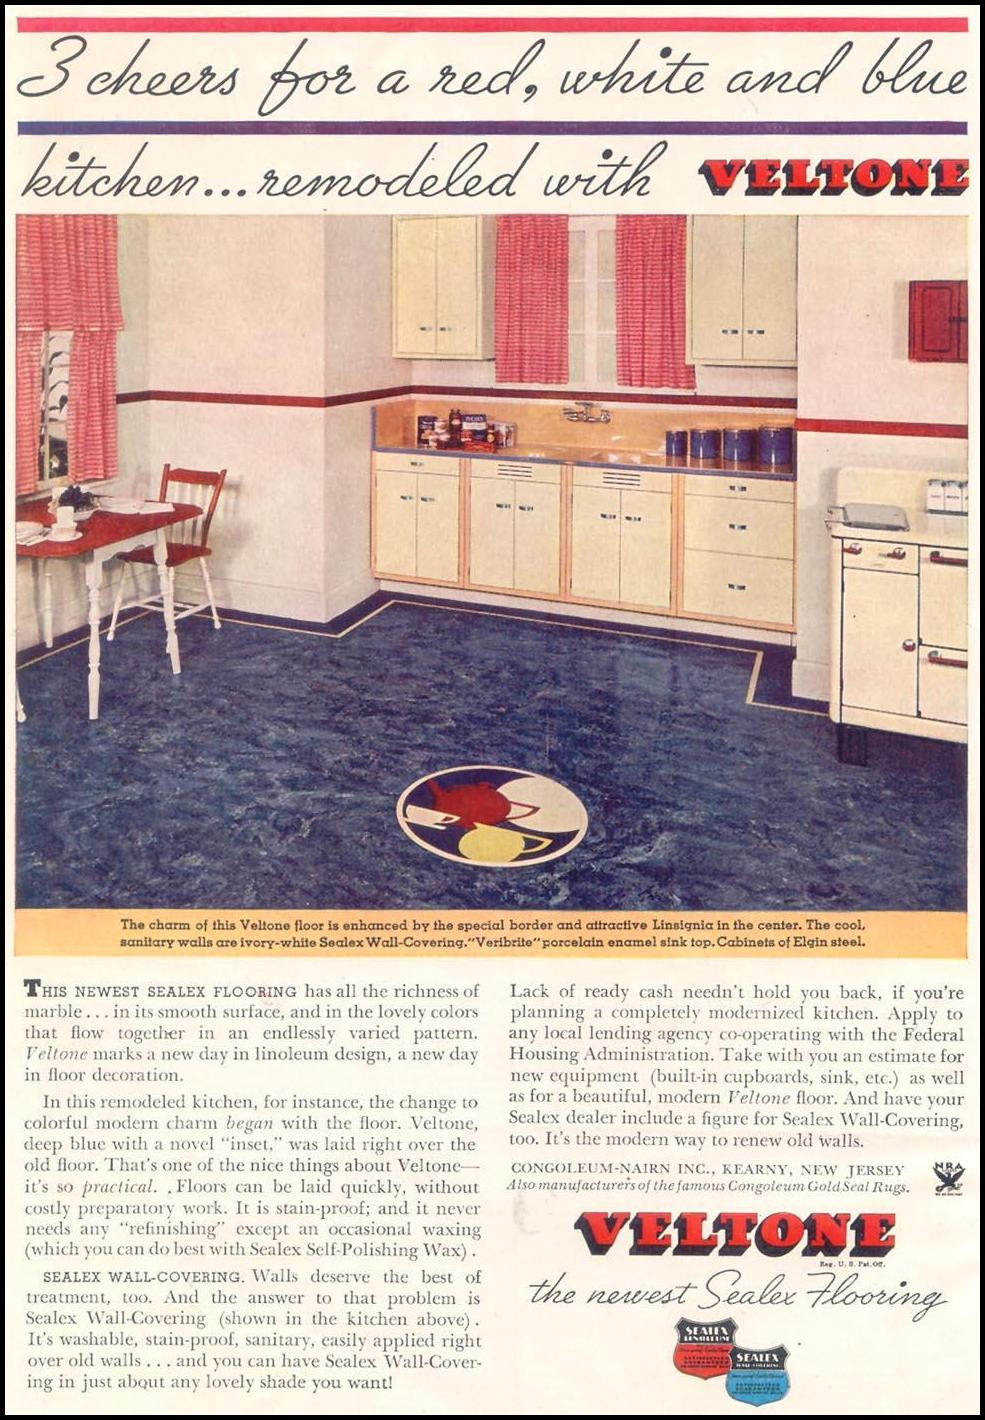 VELTONE SEALTEX FLOORS